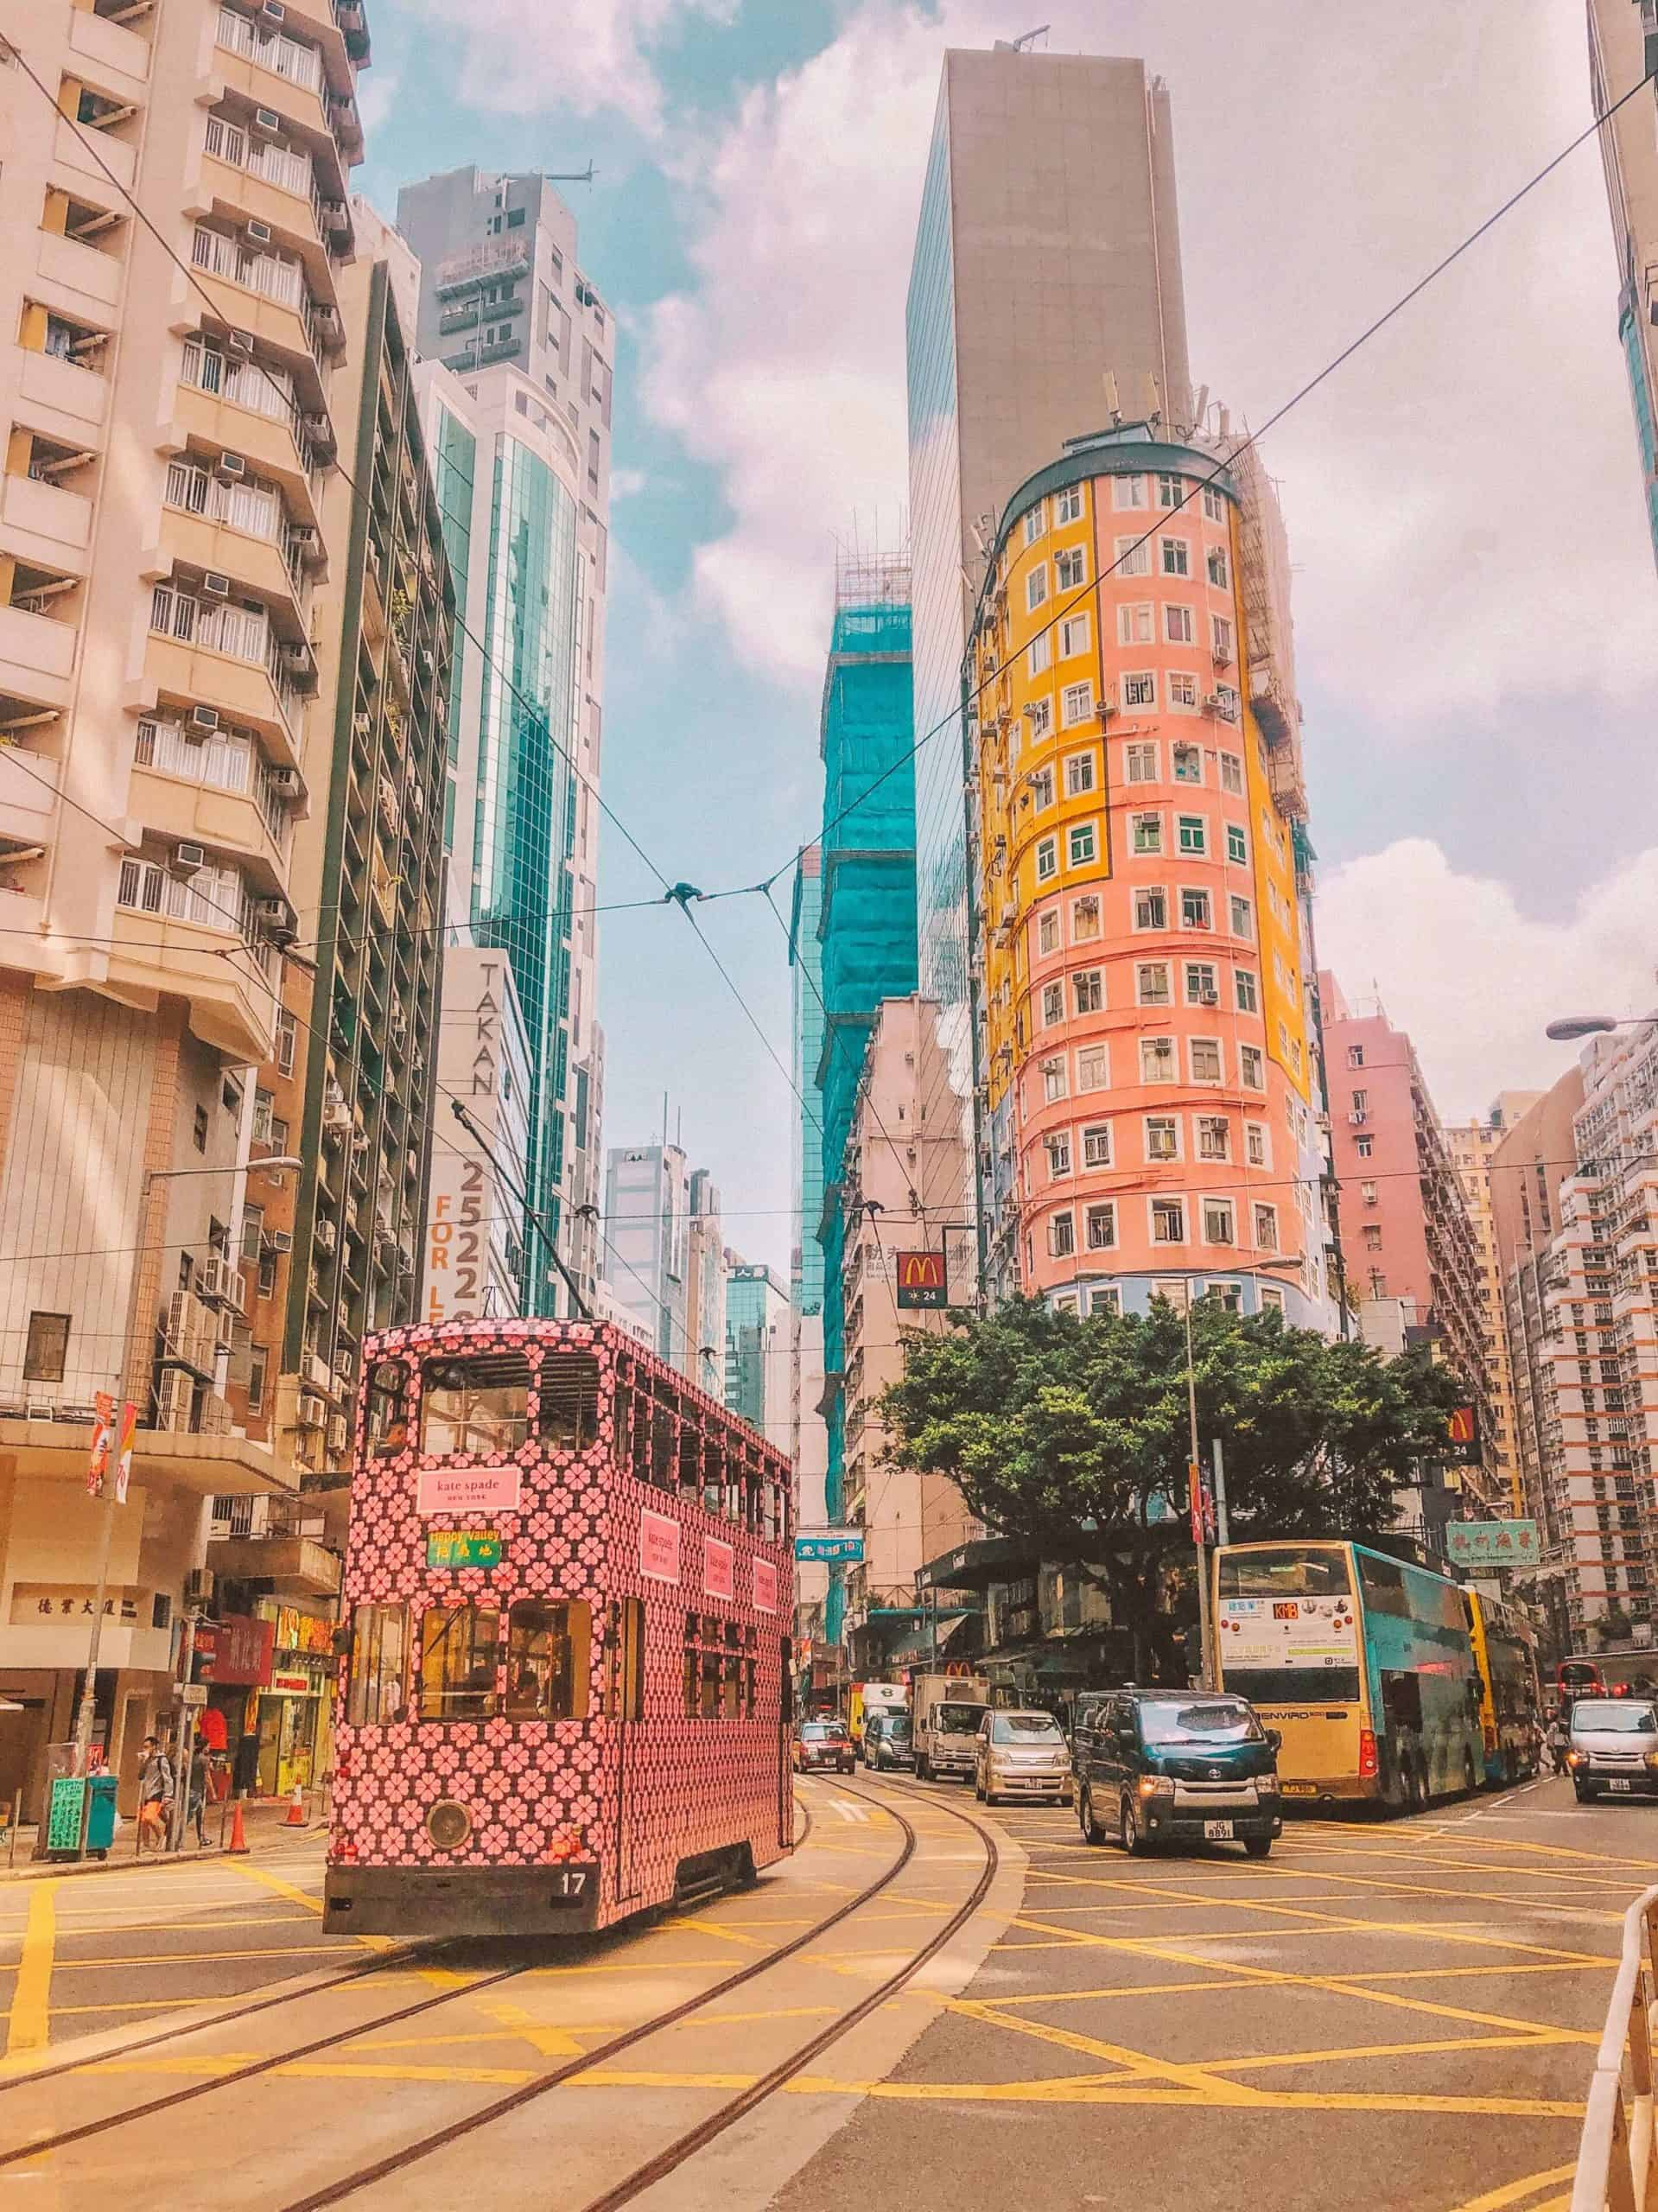 The ultimate list of the best Instagrammable places in Hong Kong with geolocations and how to get there. Hidden instagrammable places in Hong Kong you can't miss. The most comprehensive list of the Instagram spots in Hong Kong you cannot miss. Instagrammable restaurants in Hong Kong | Instagrammable cafes in Hong Kong | Hong Kong Instagrammable spots #instagram #hongkong #photography